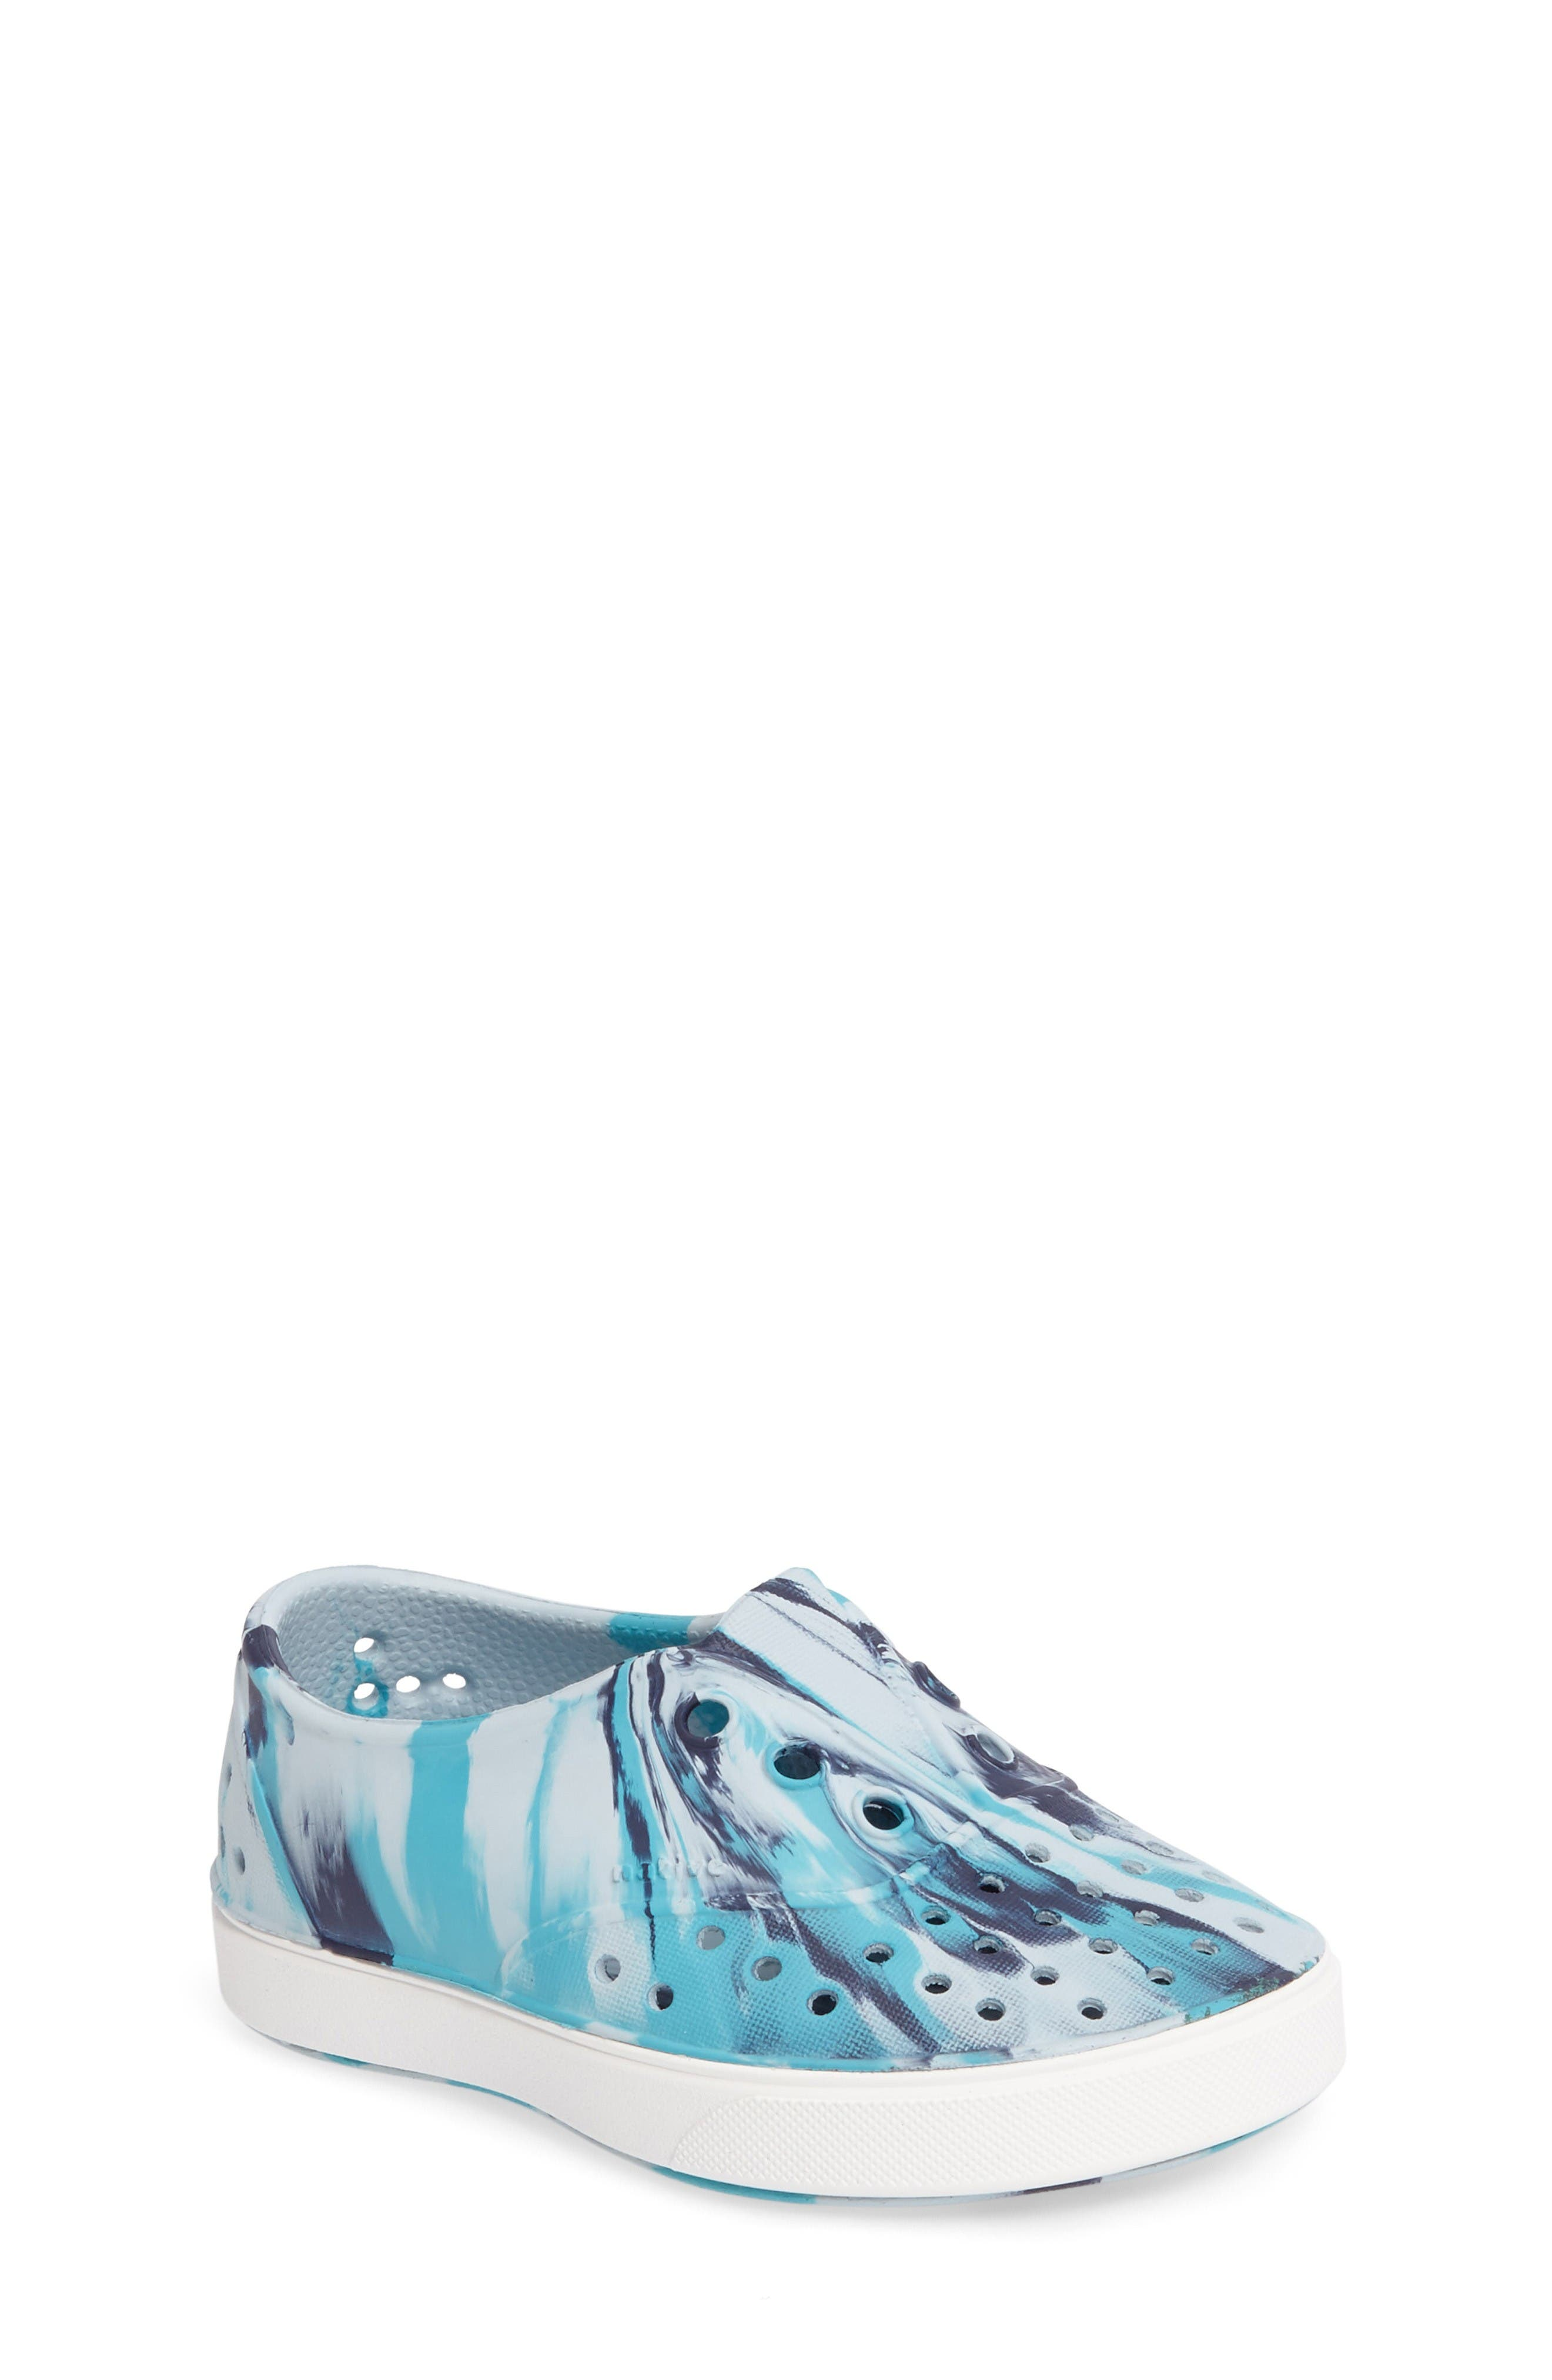 NATIVE SHOES Miller - Marbled Perforated Slip-On